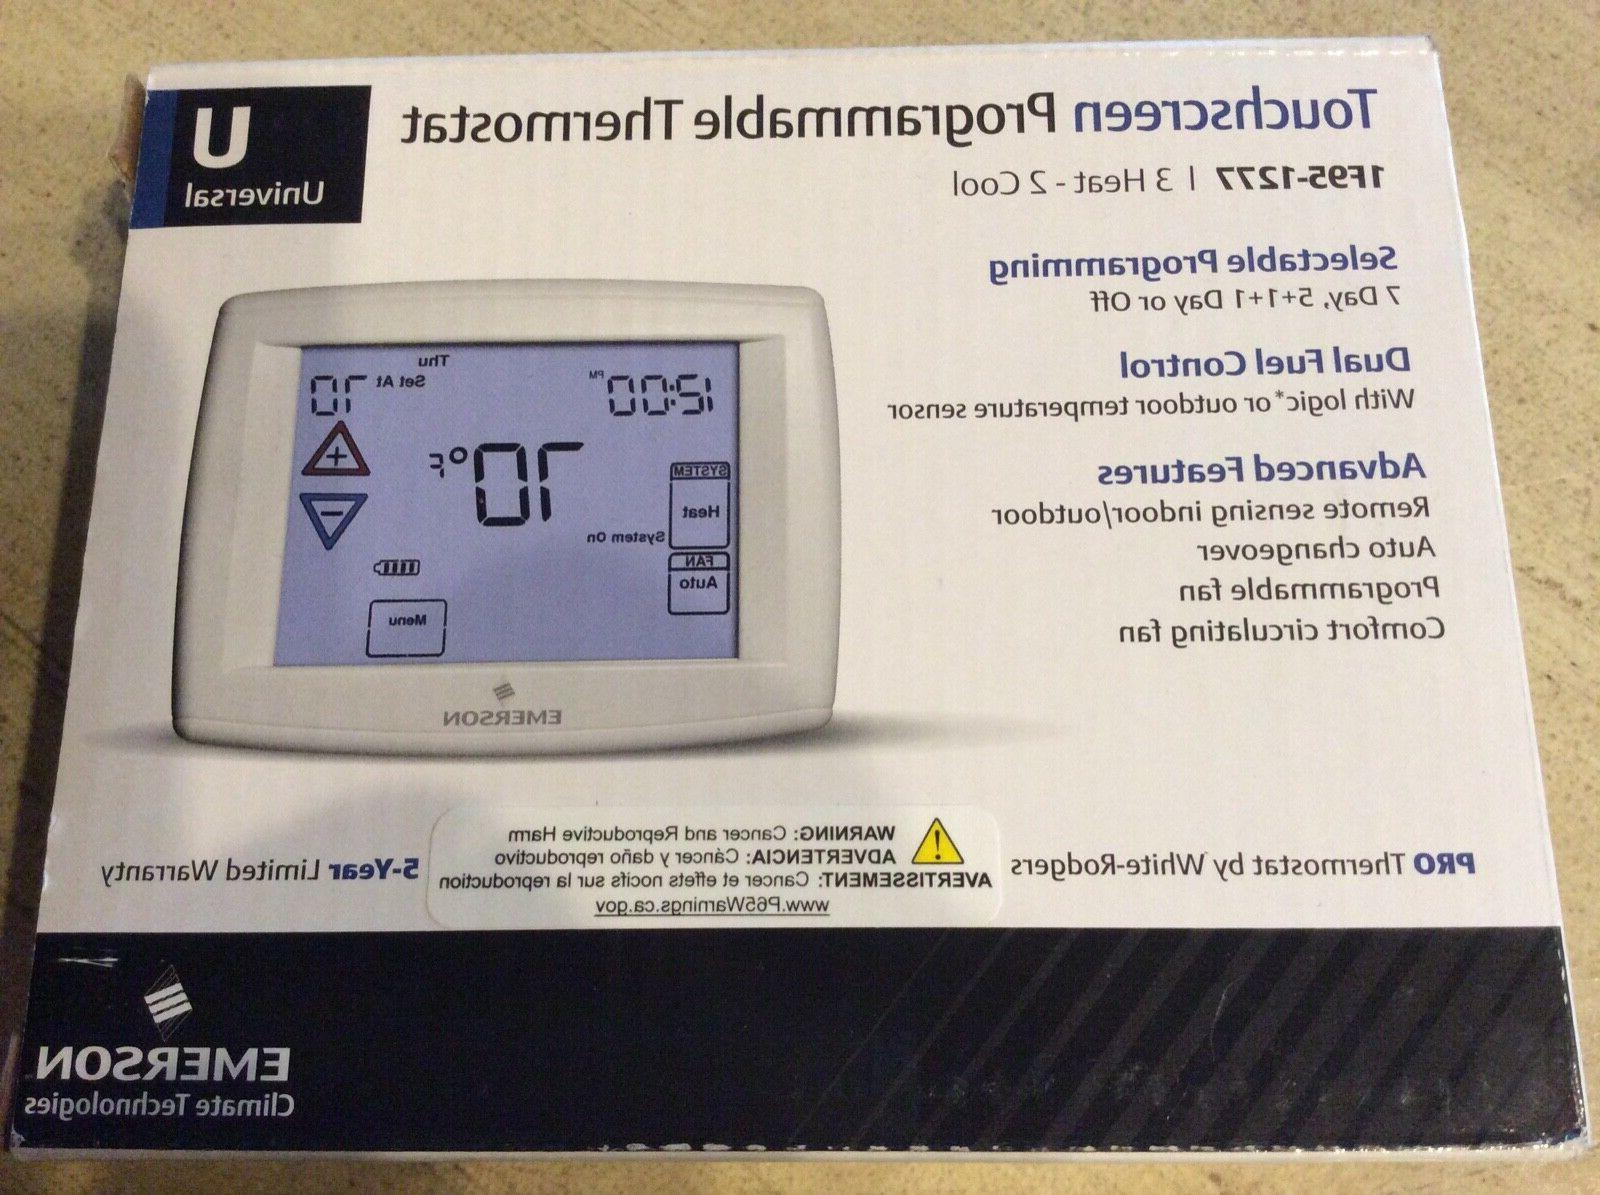 emerson 7 day programmable thermostat